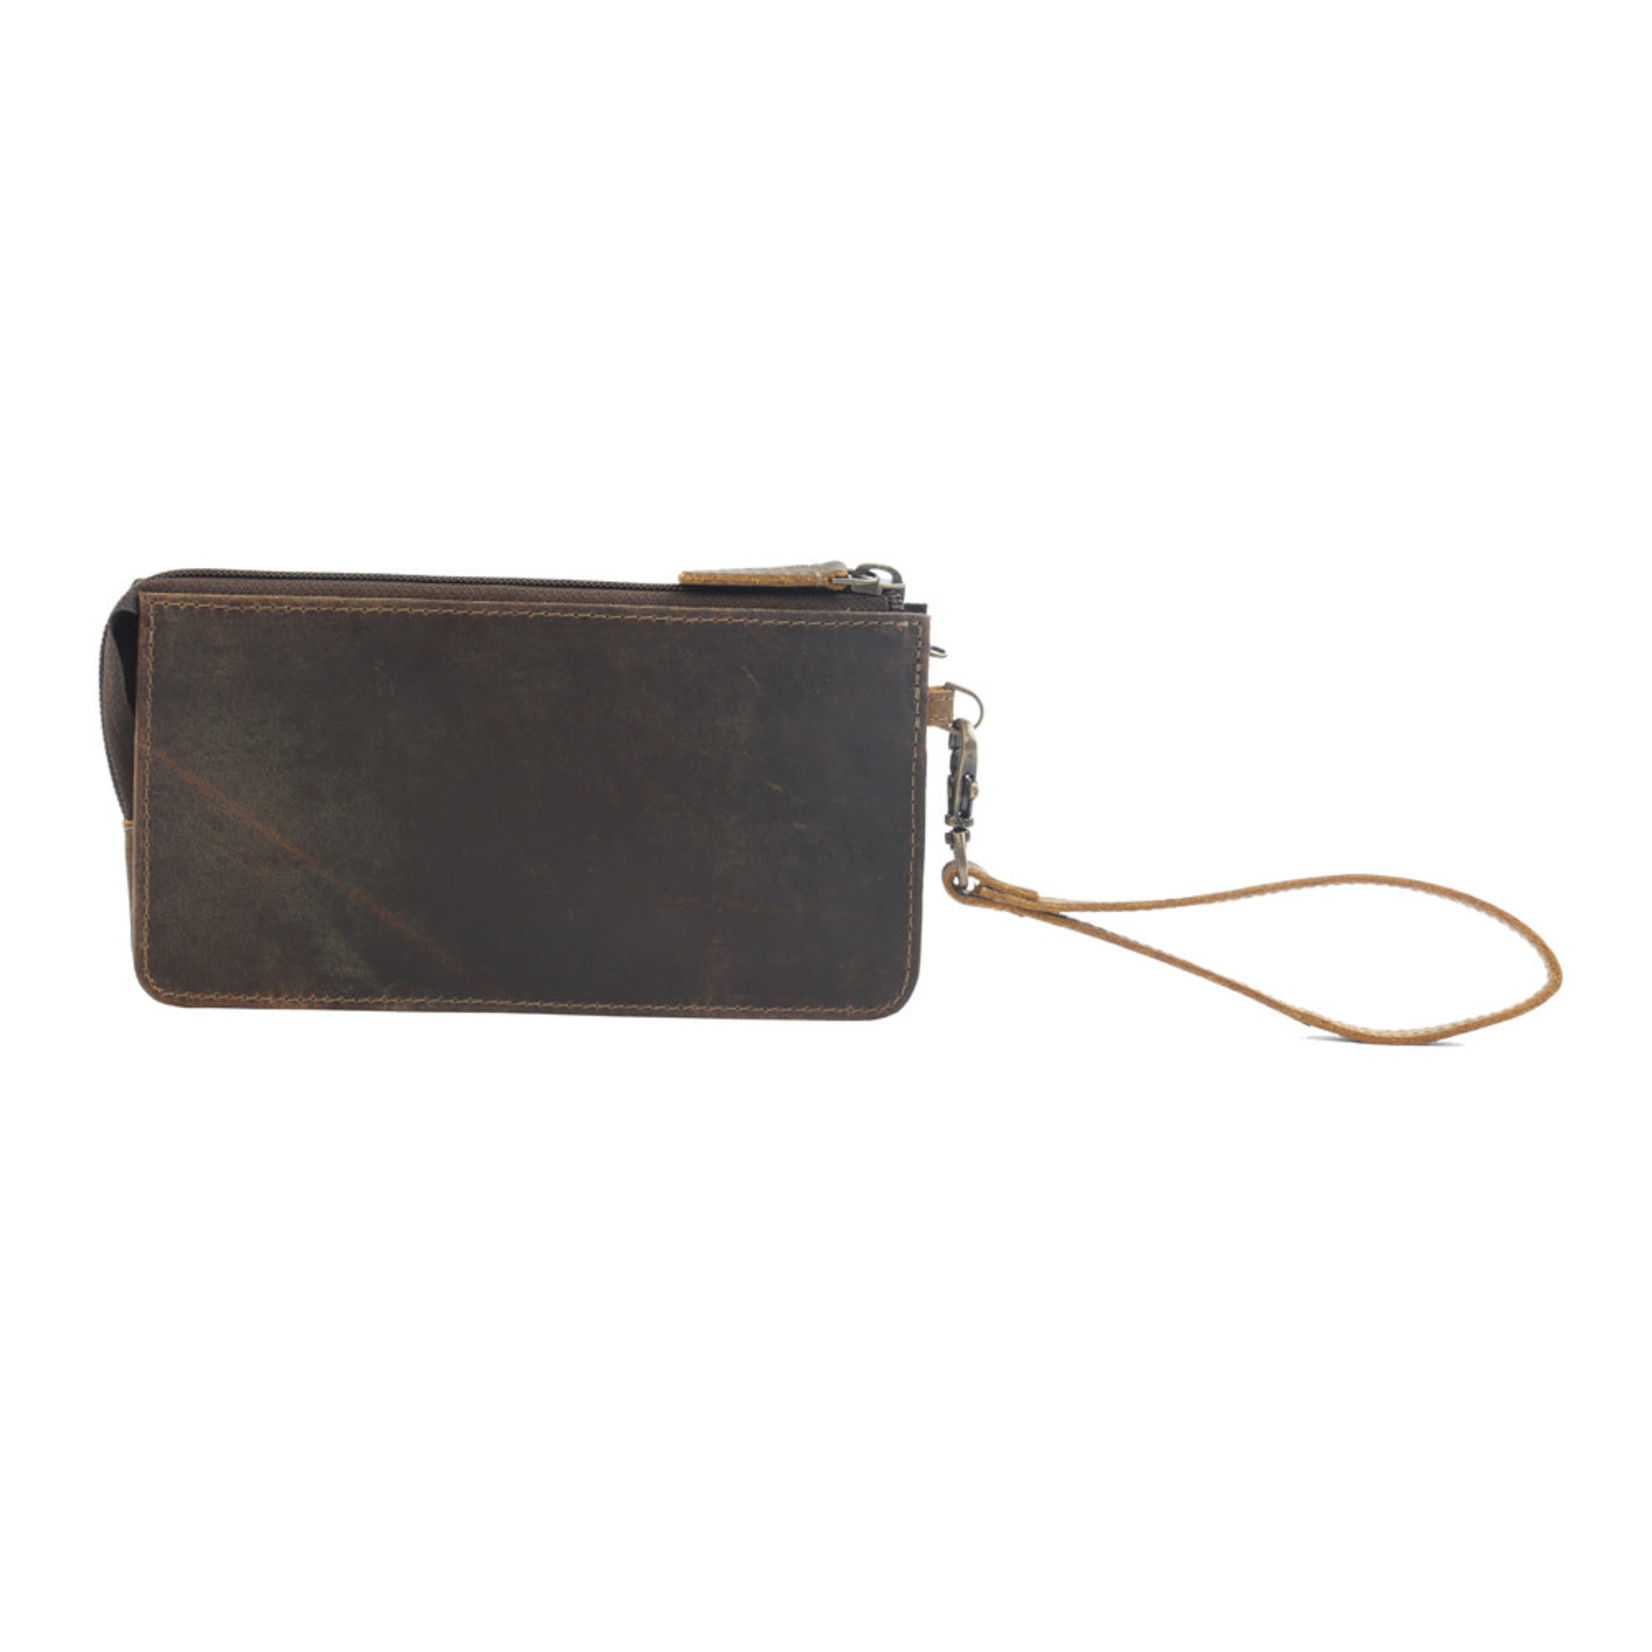 Myra Bags S-2731 Perfect Tan Leather Wallet